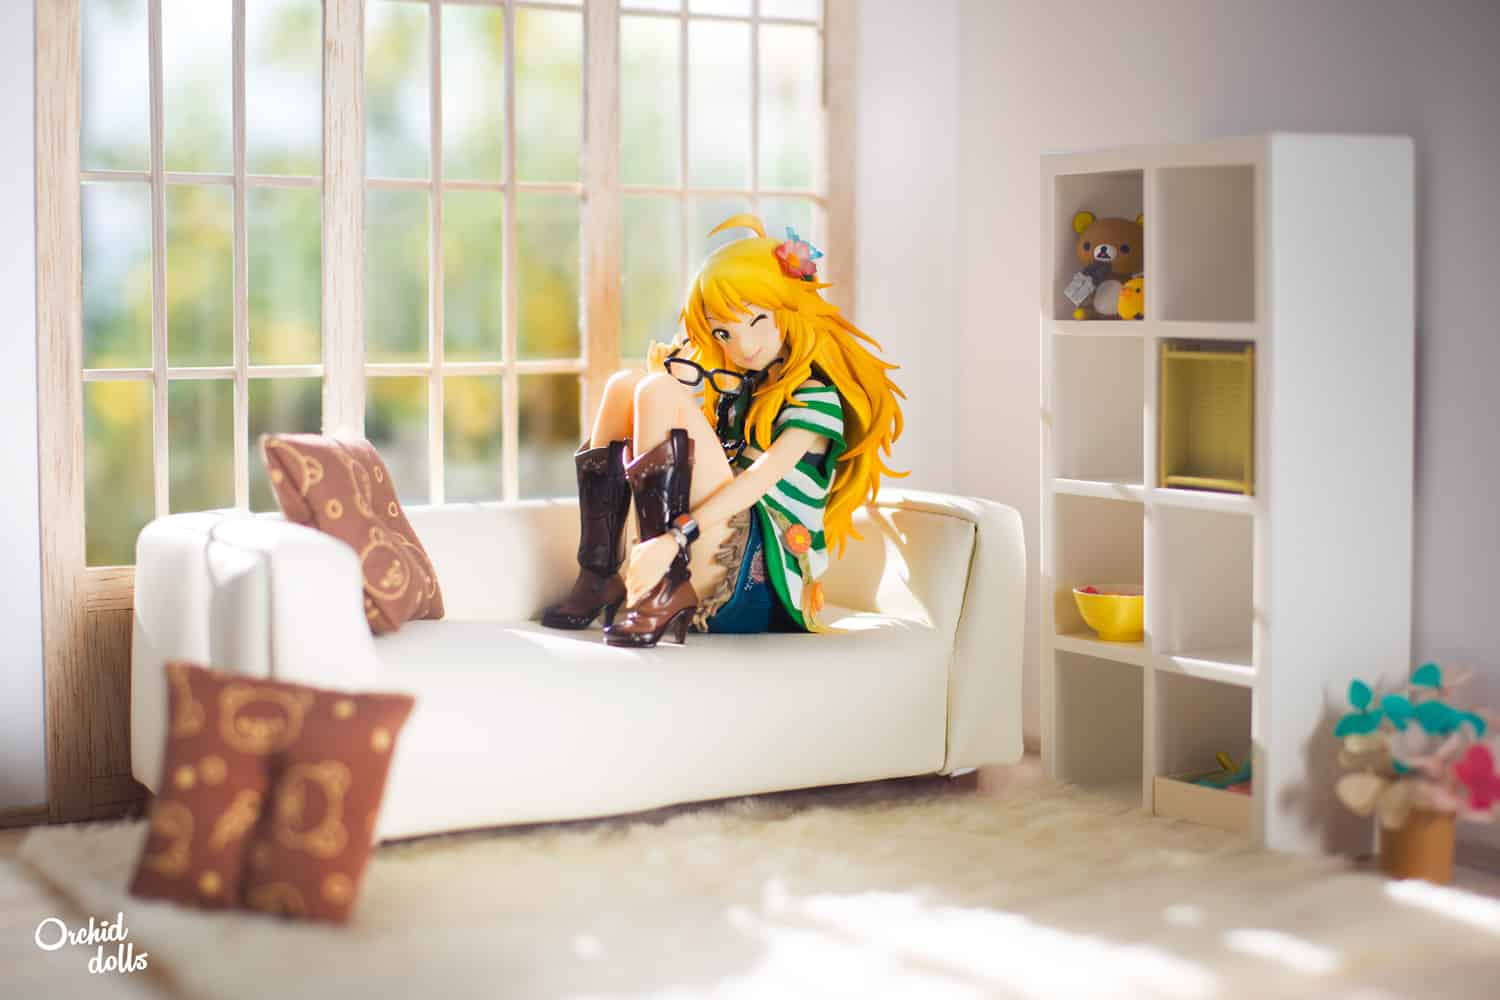 Miki Hoshii figure in a cozy miniature living room